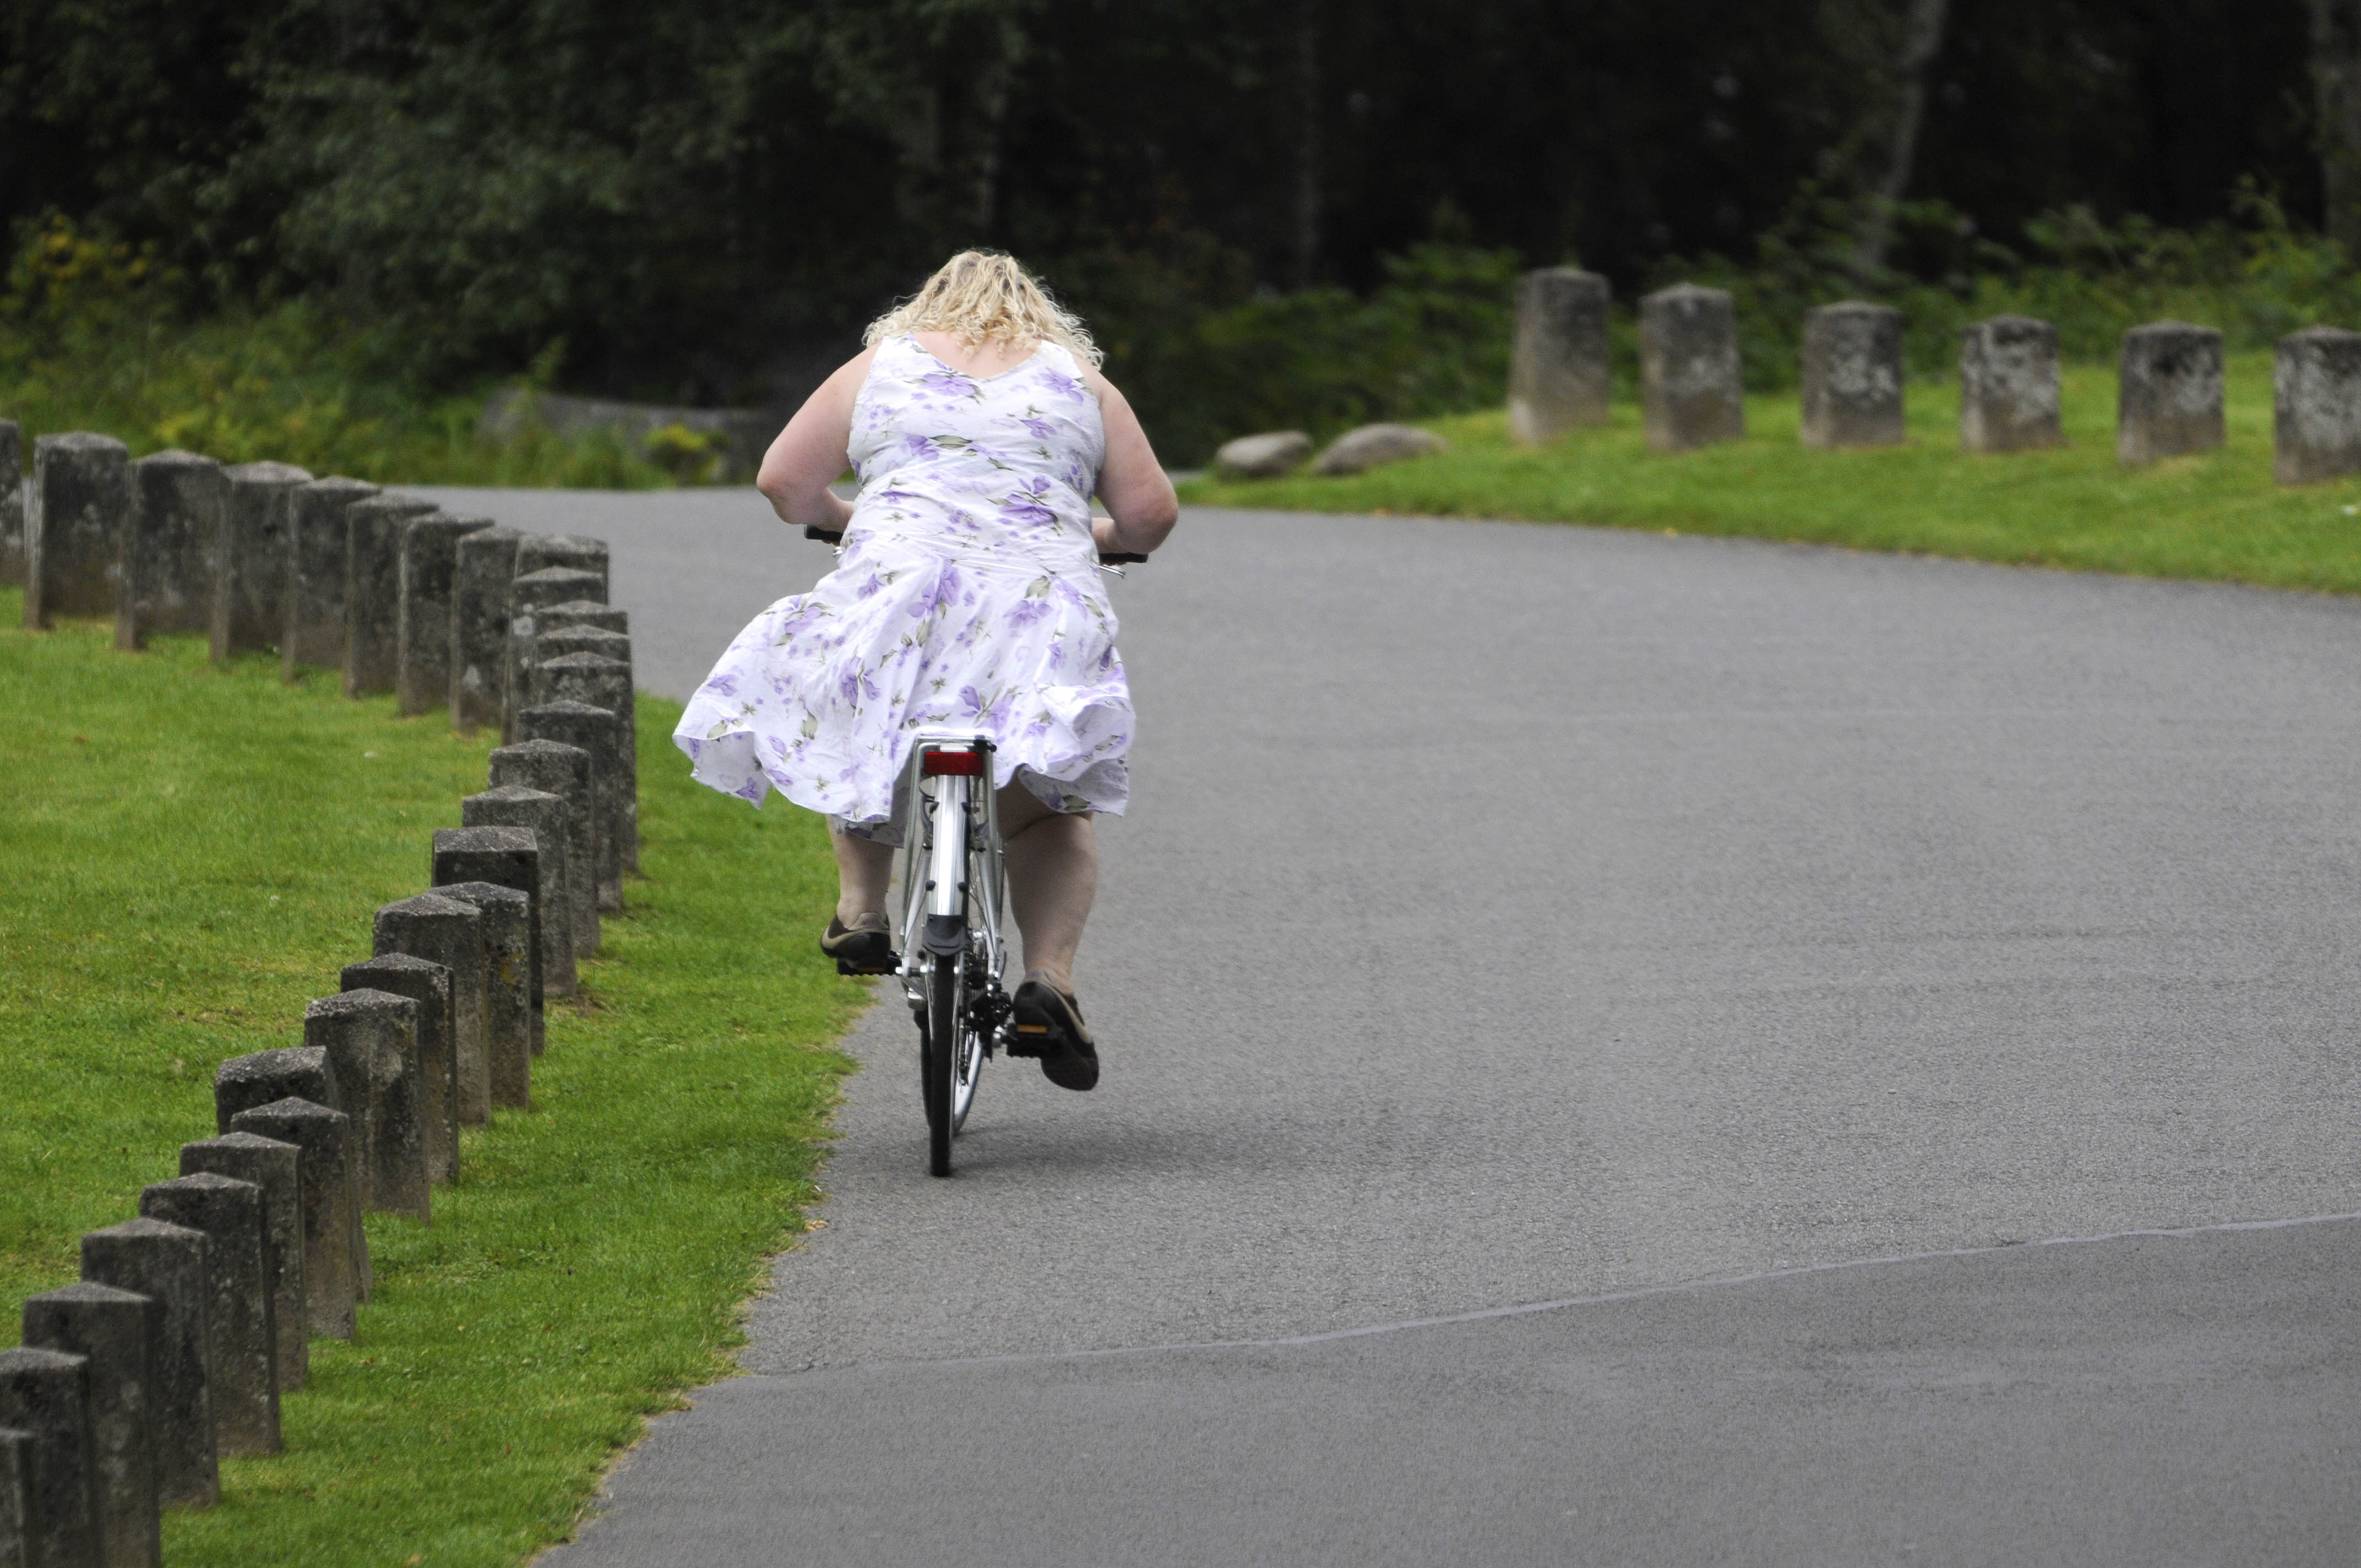 Angel on a Bicycle, GB-SCT ©Johannes Ratermann